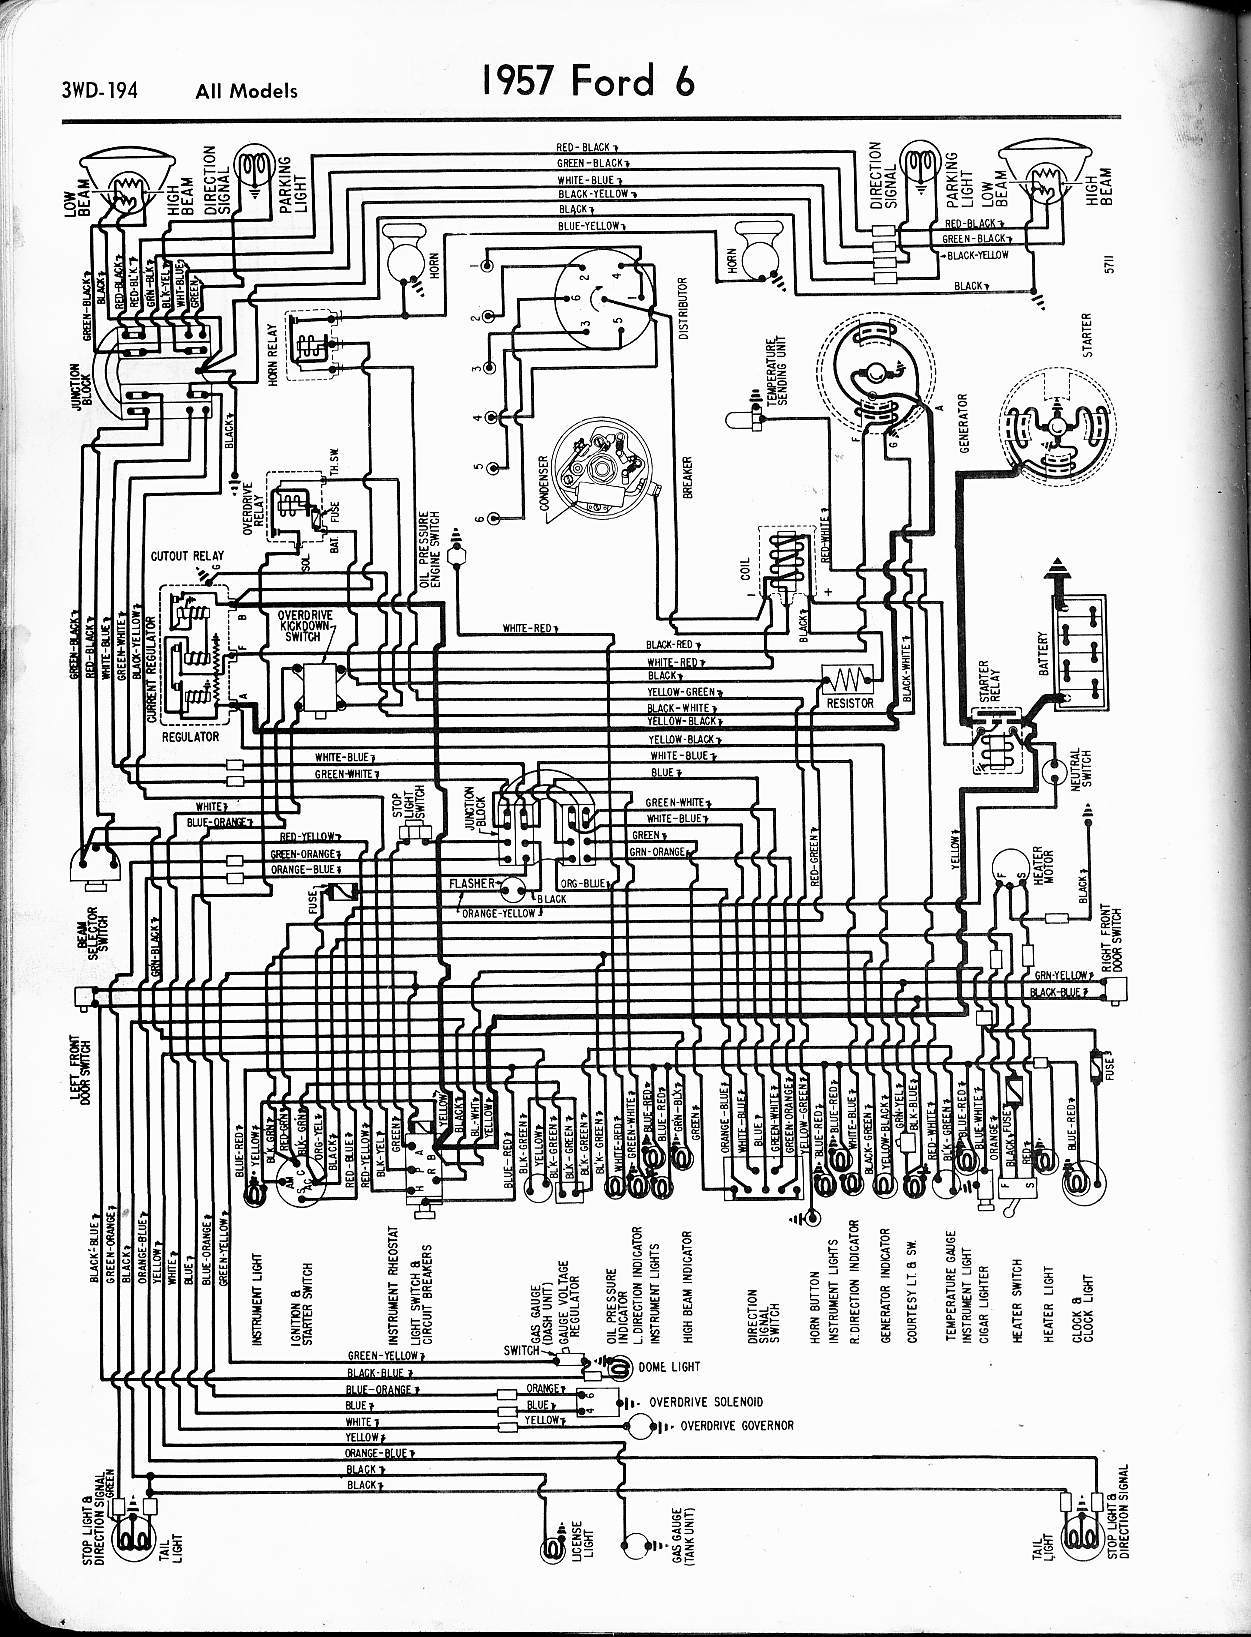 truck wiring diagram 1957 ford truck wiring diagram ford truck enthusiasts forums 1957 ford truck wiring diagram